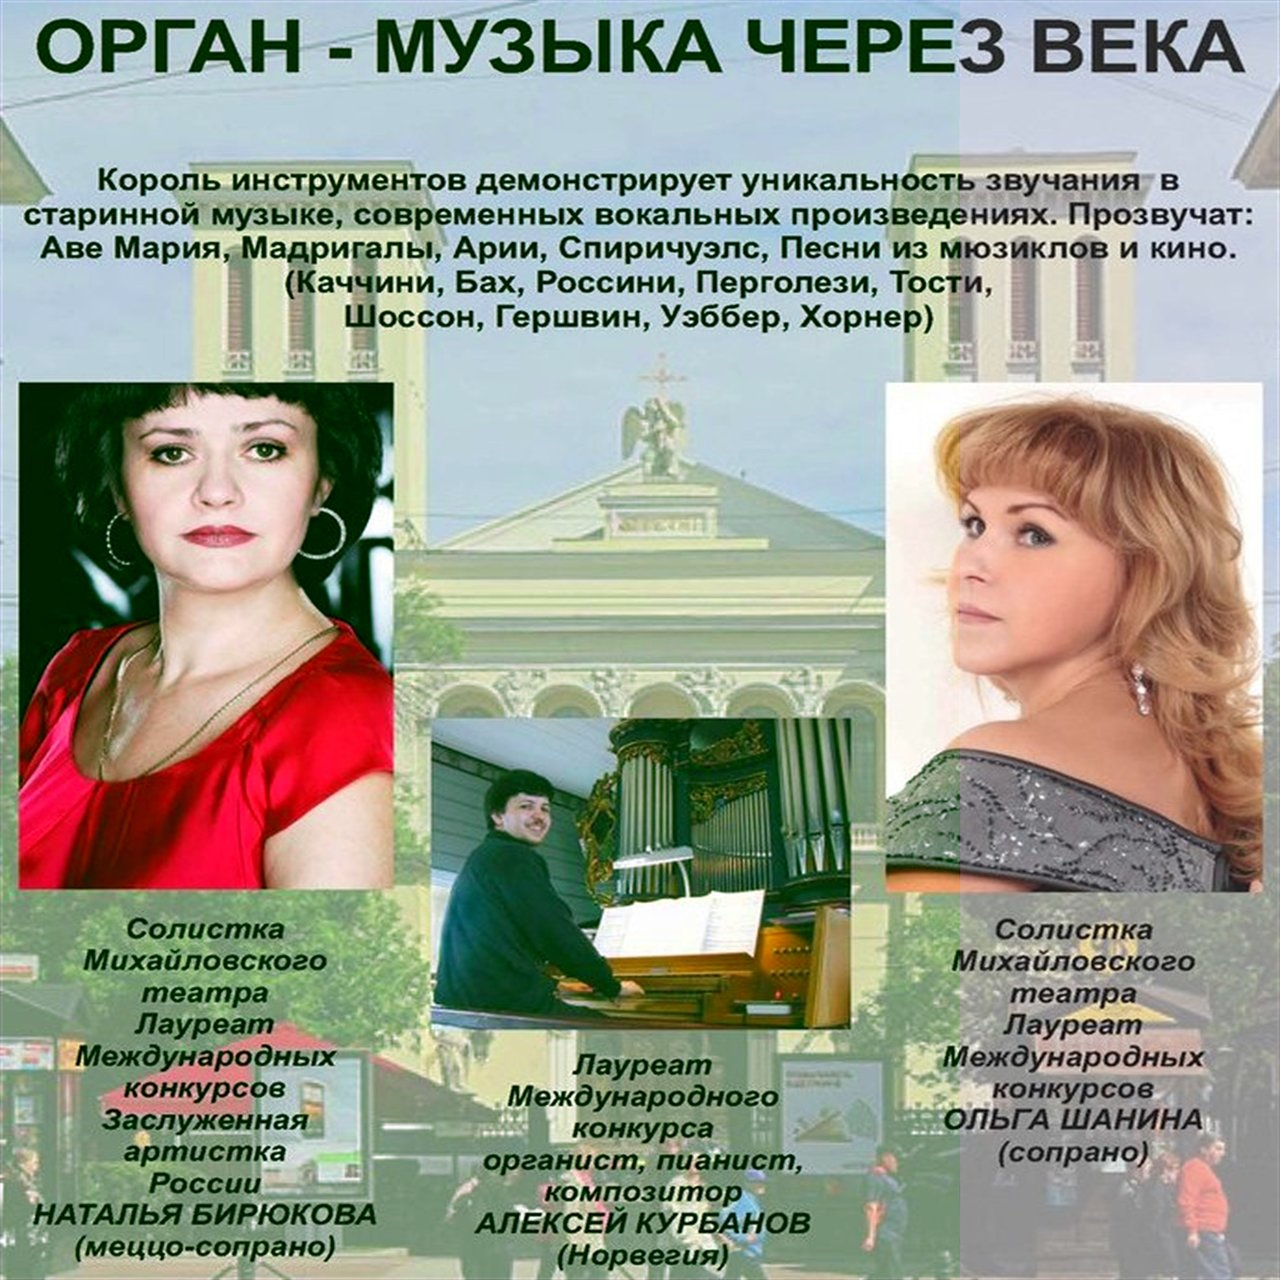 Organ - Music Through Ages (Live from Petrikirche, St. Petersburg, November 3, 2015)